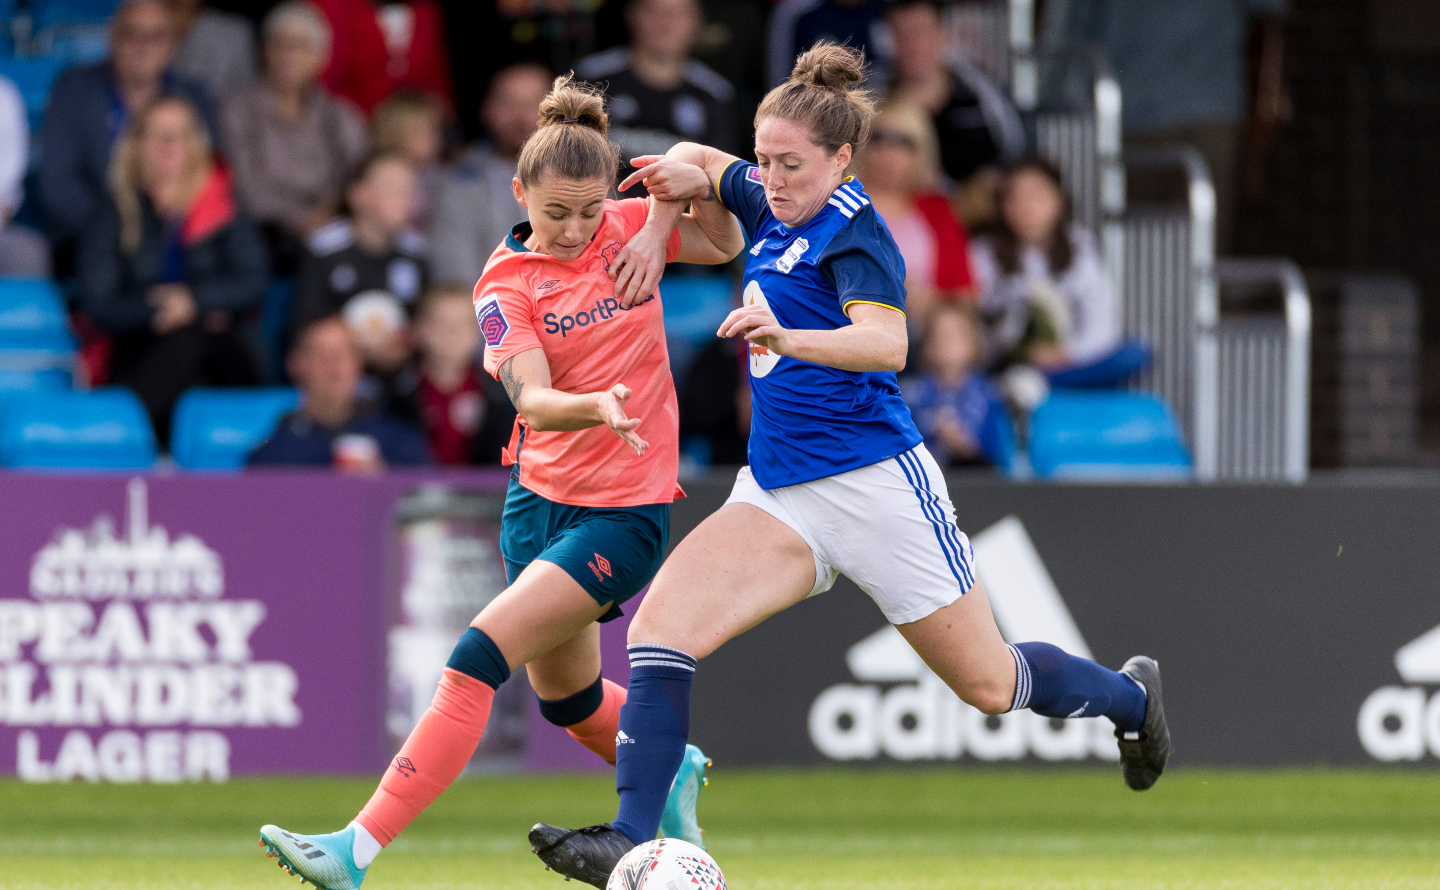 Birmingham City 0-1 Everton: FA WSL